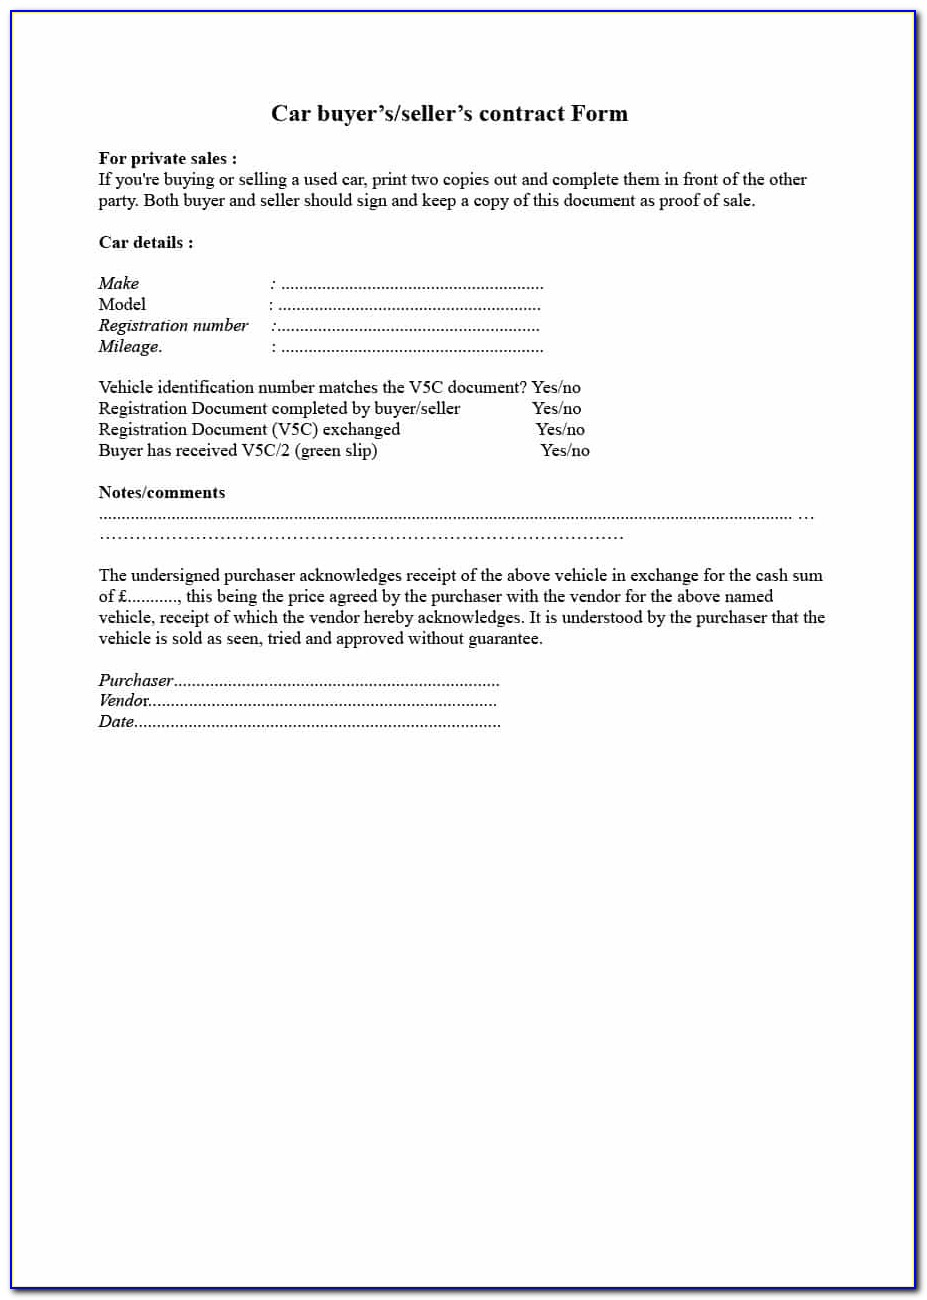 Car Residential Purchase Agreement Sample